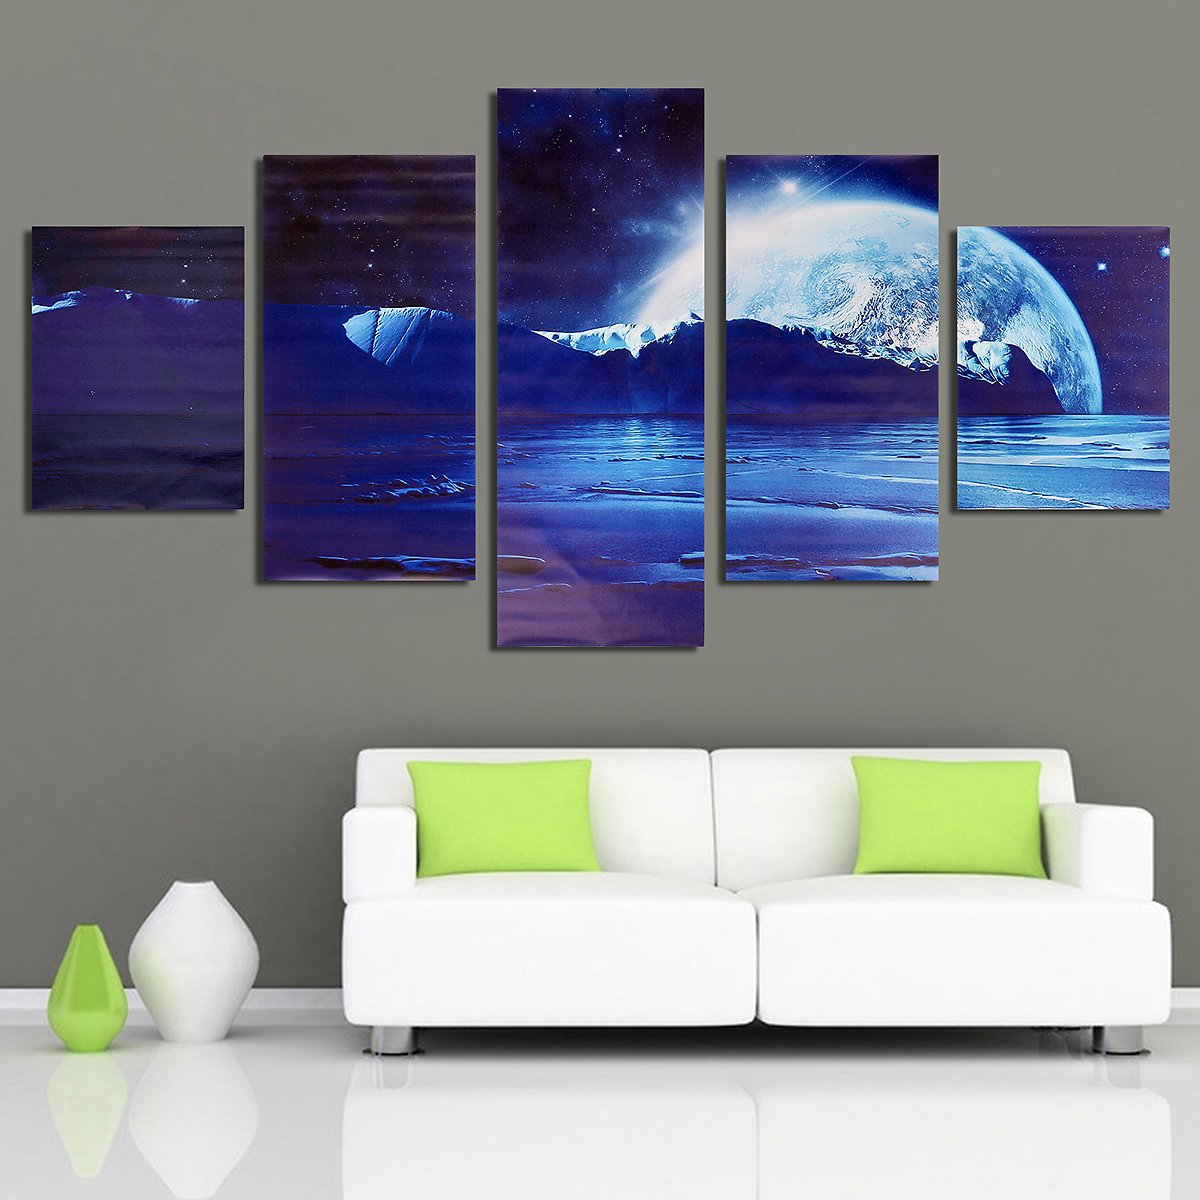 4/5 Pcs Frameless Canvas Prints Pictures, Morden Abstract Paintings + F/S